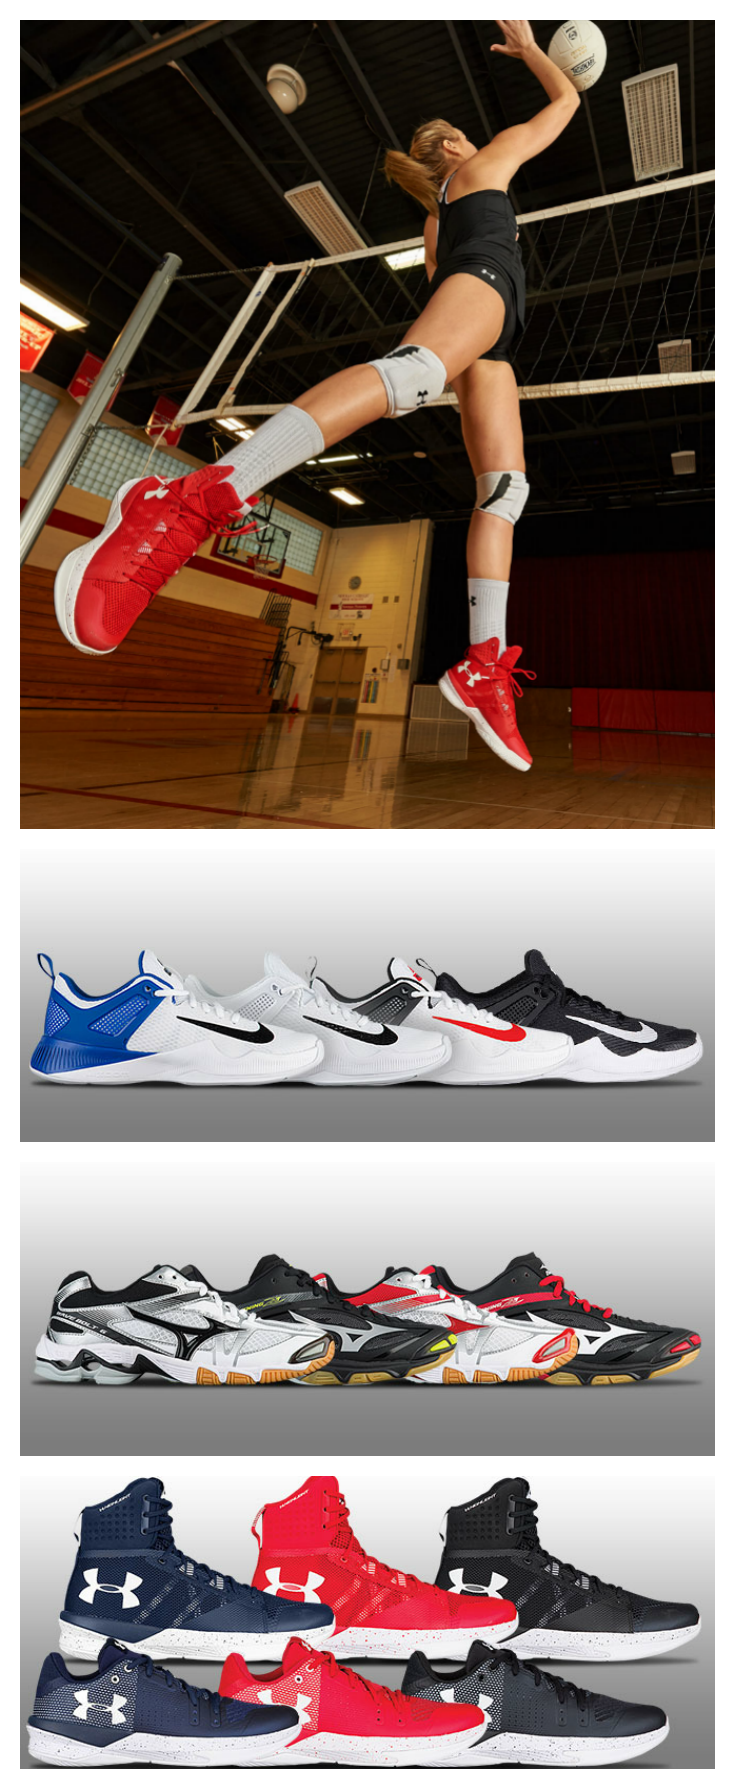 The Best Volleyball Shoes And Products — Gear Up The Right Way ... fbd5915d04